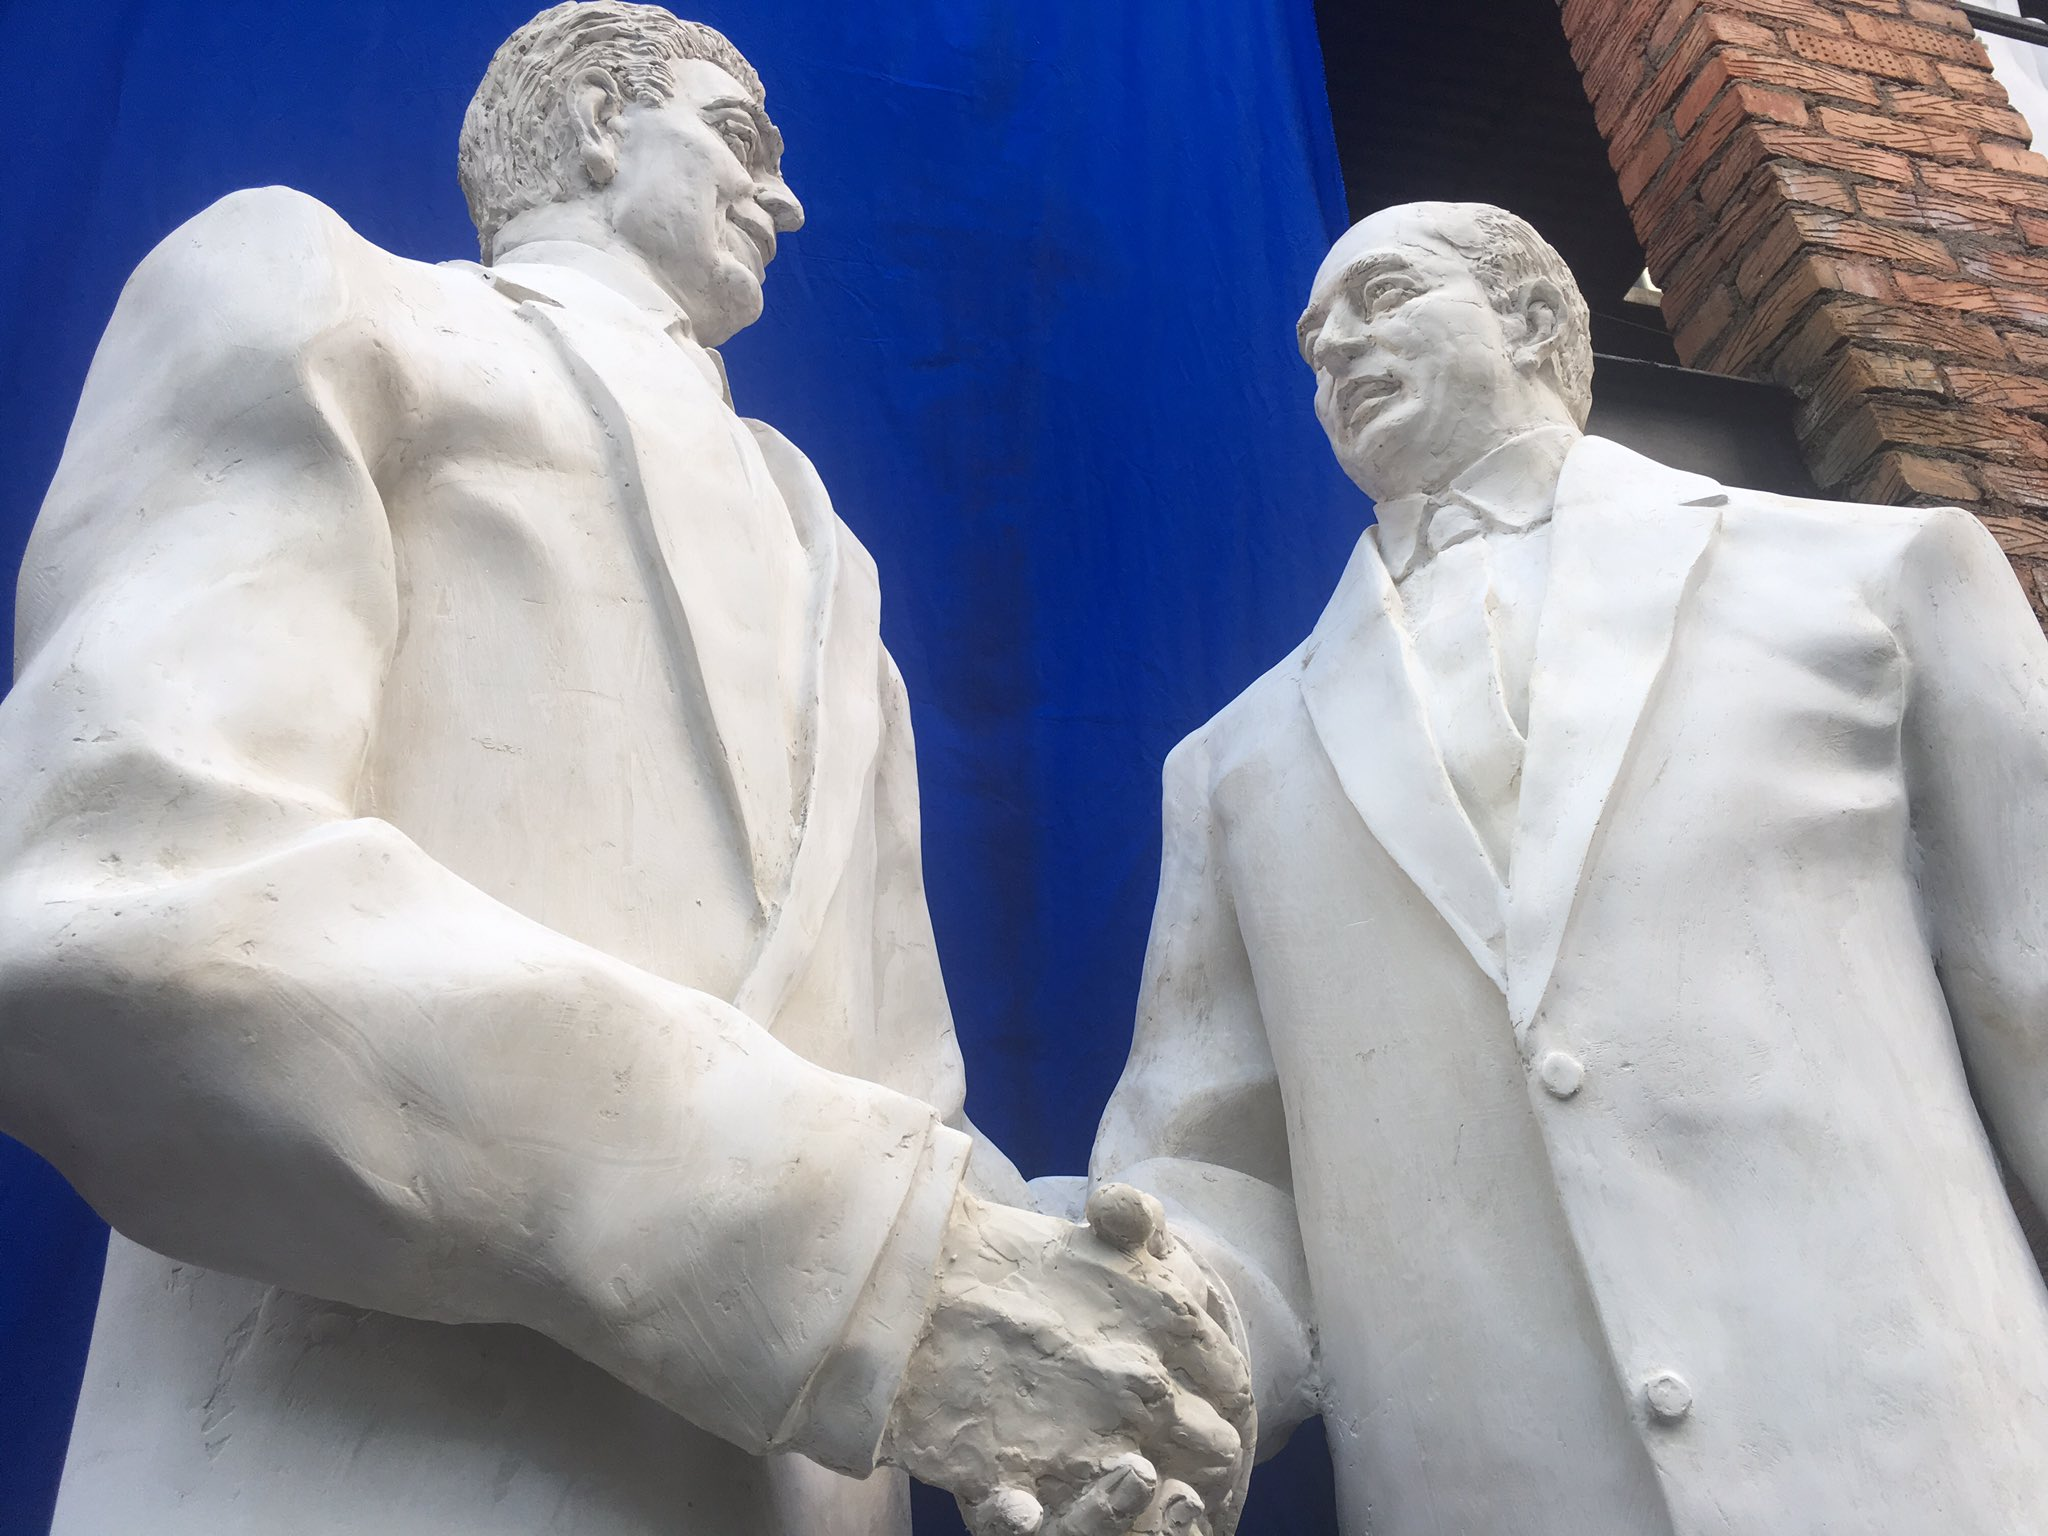 Reagan meets Gorbachev: the new statue unveiled in Moscow (just days before Trump meets Putin.) https://t.co/0DgZgyrVuy